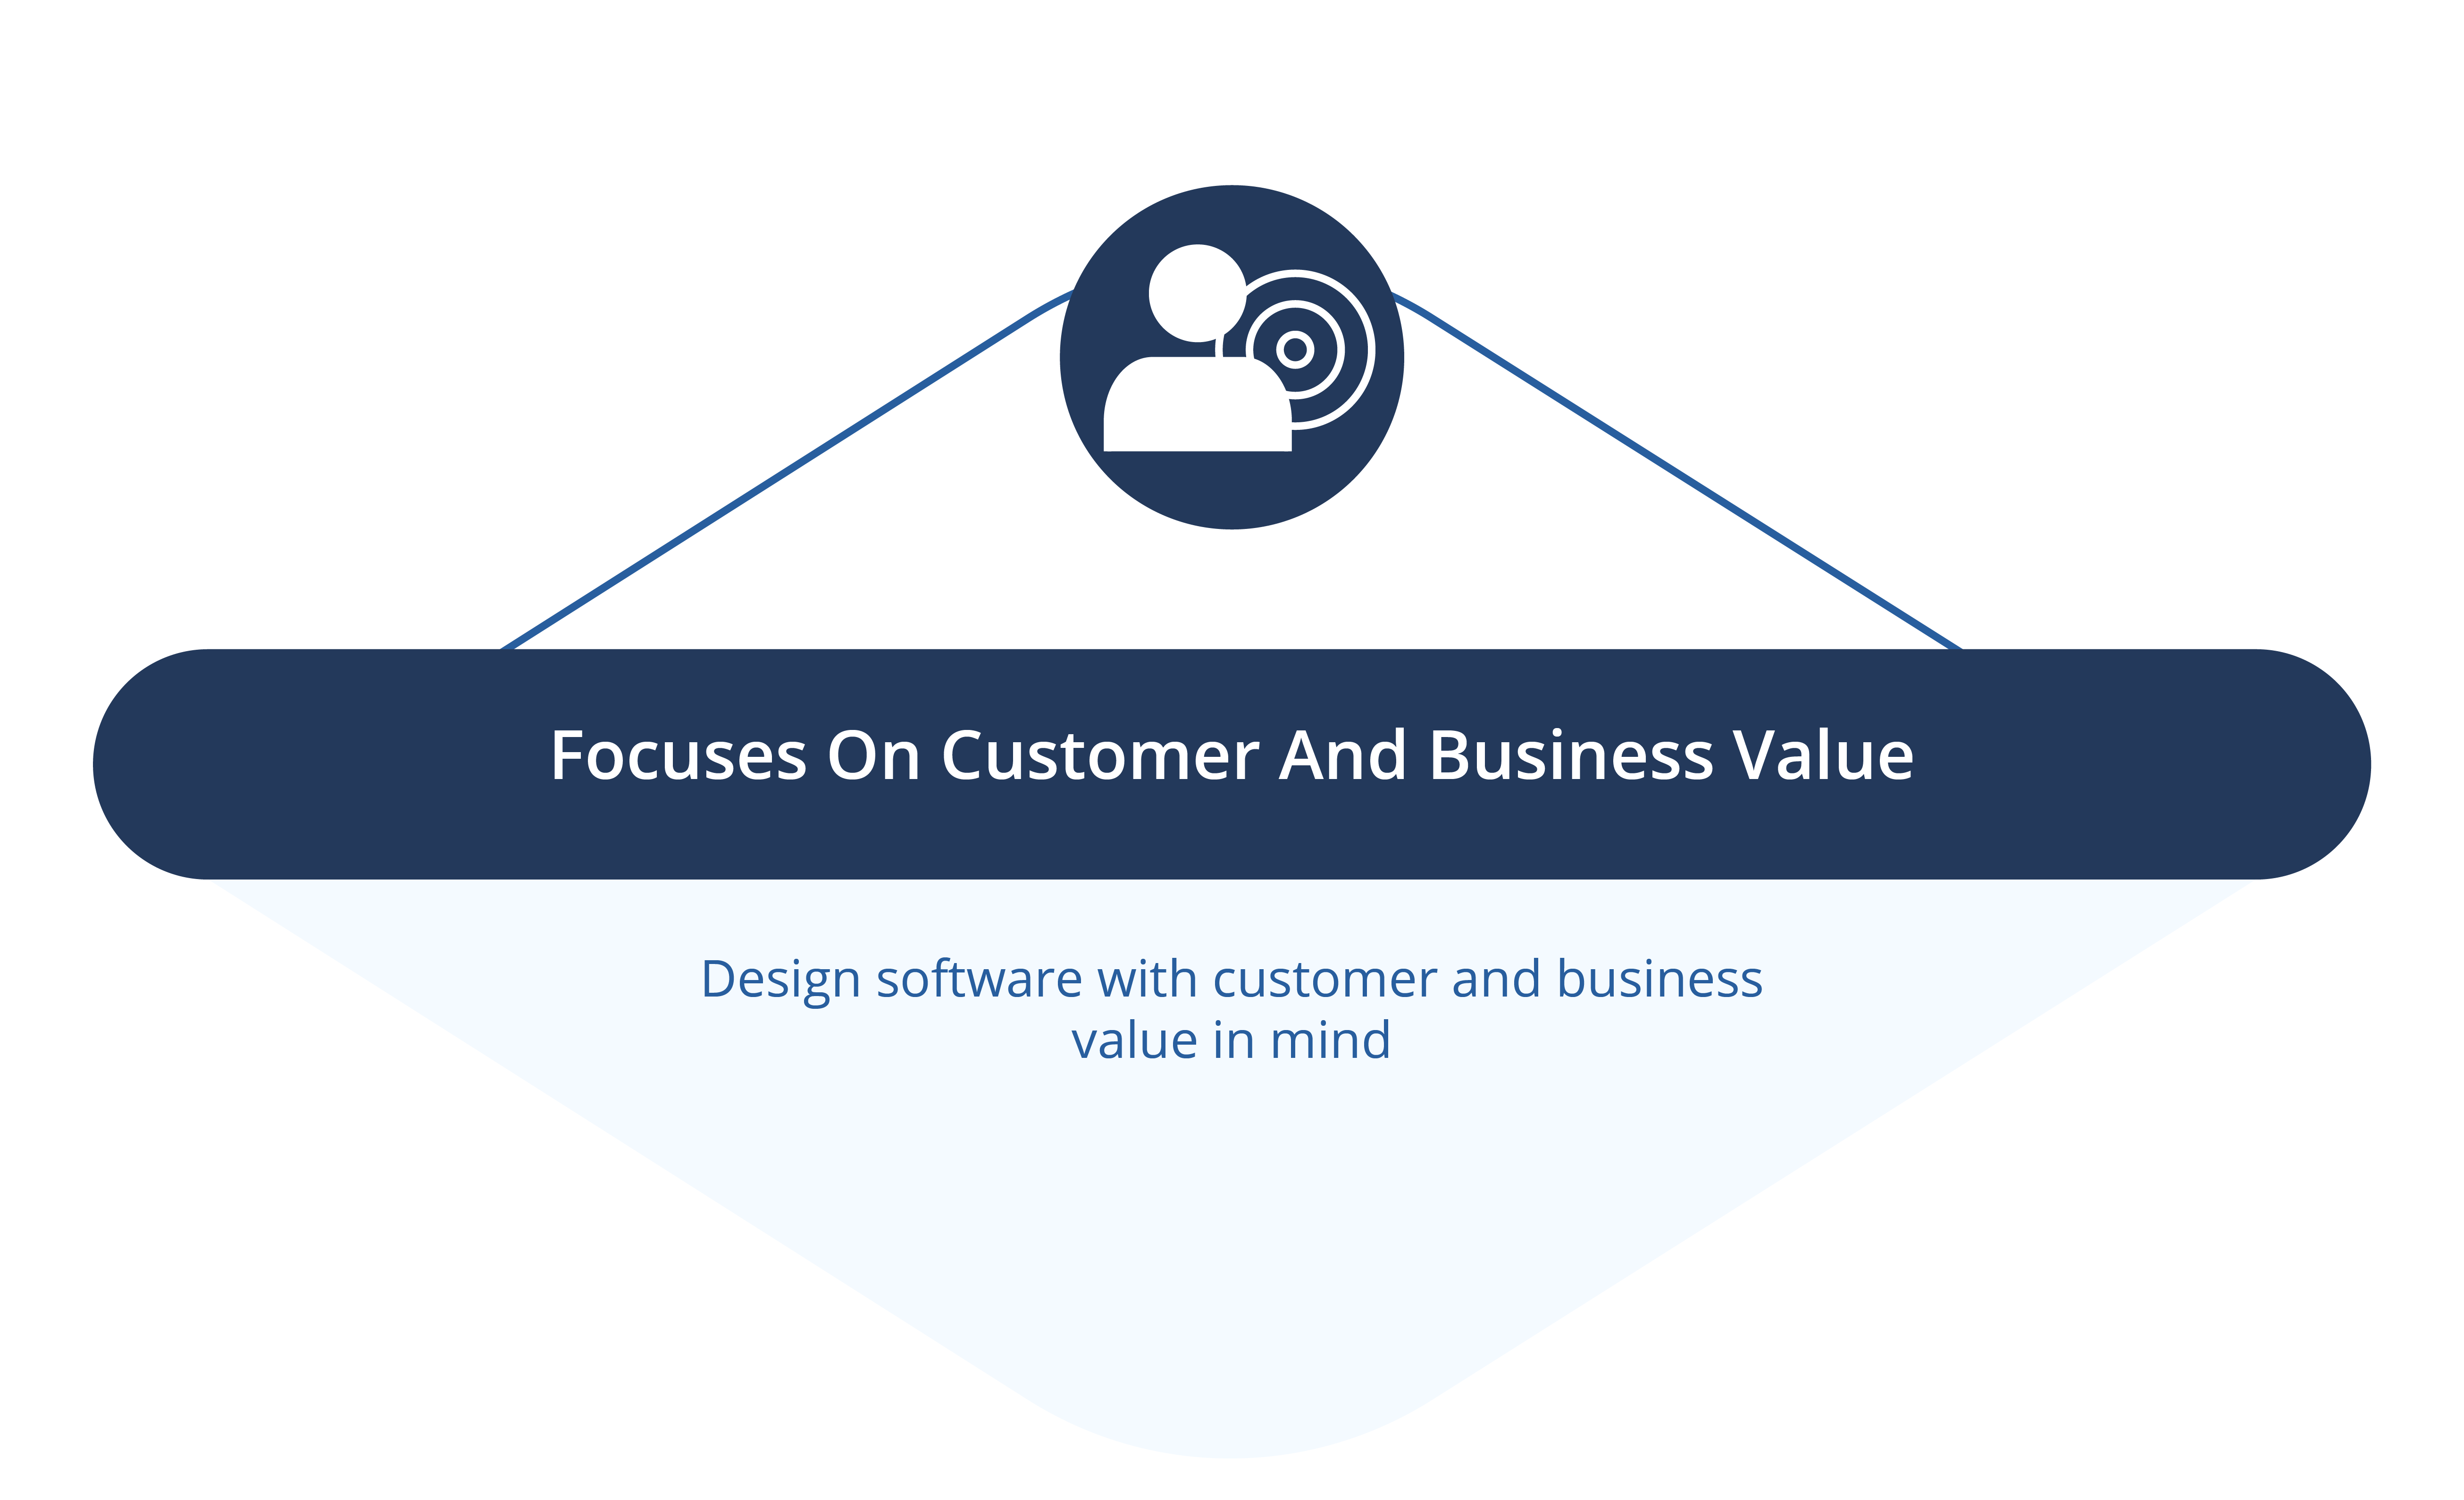 Focuses On Customer And Business Value